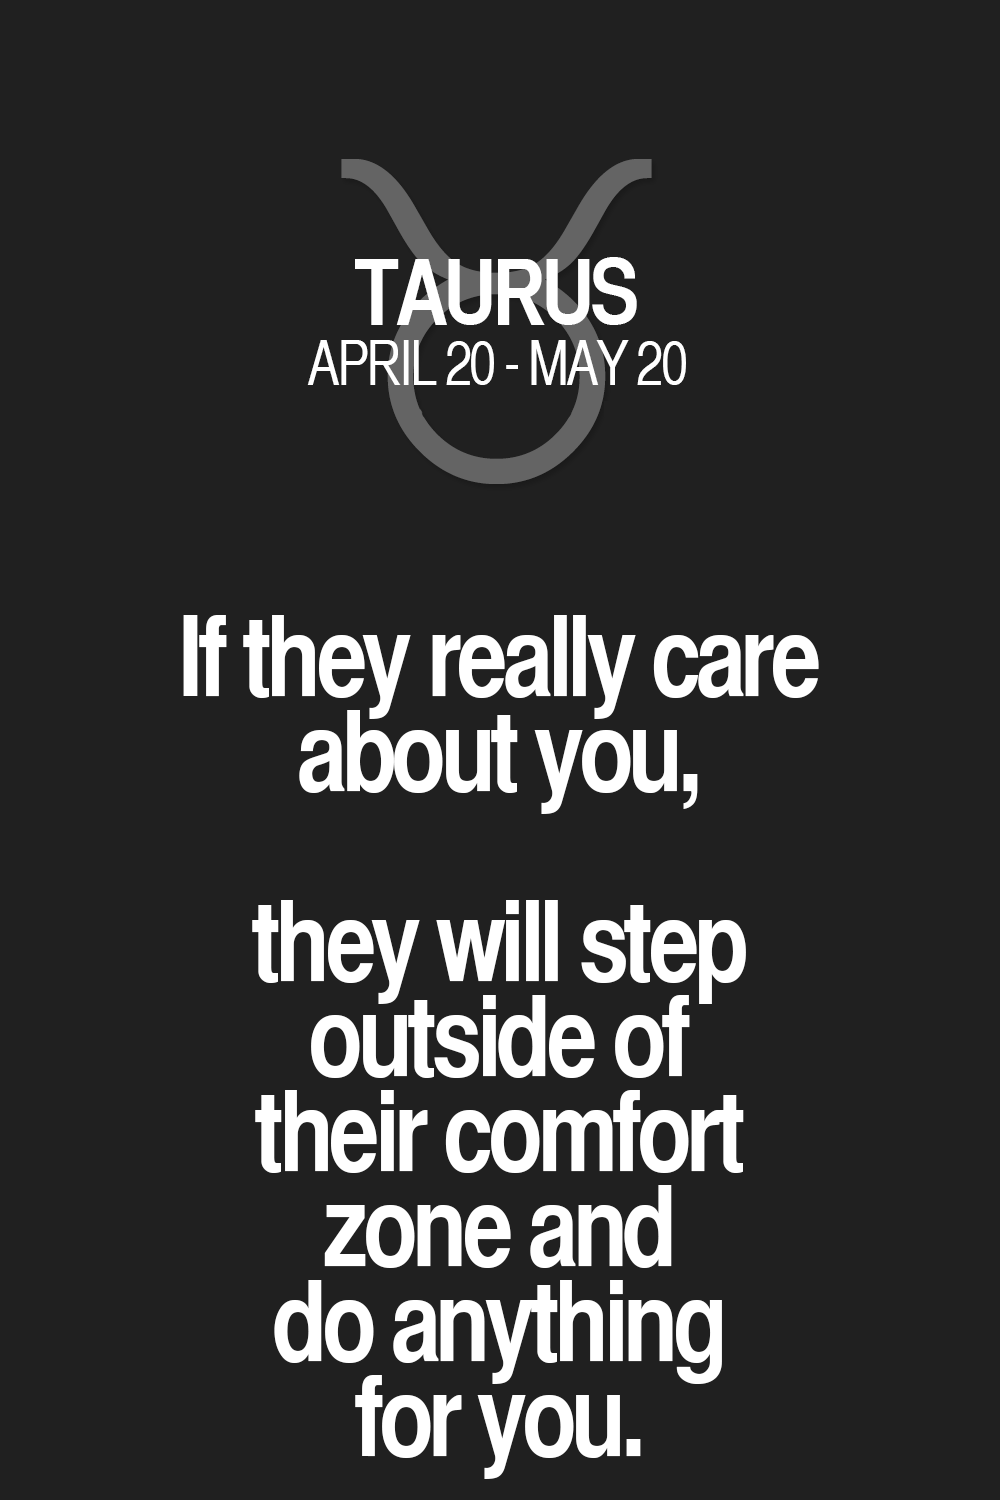 If they really care about you, they will step outside of their comfort zone and do anything for you. Taurus | Taurus Quotes | Taurus Zodiac Signs